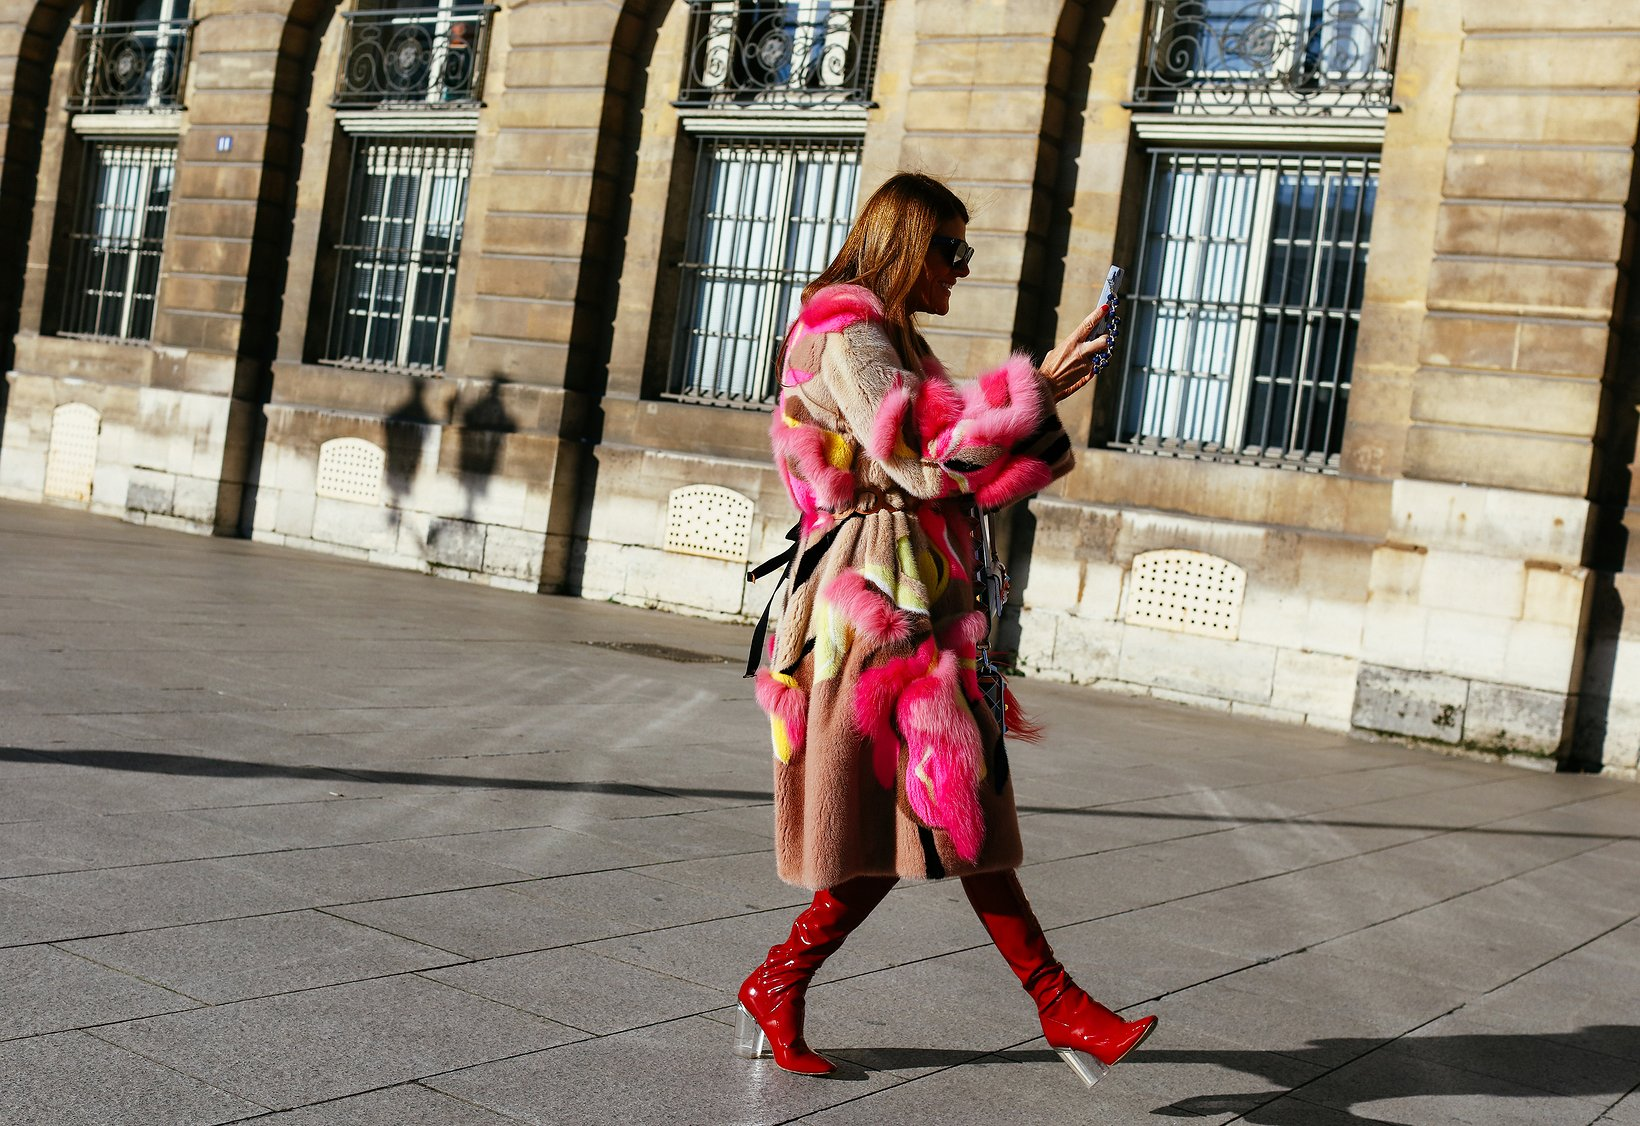 fav-looks-from-paris-fashionwonderer (3)